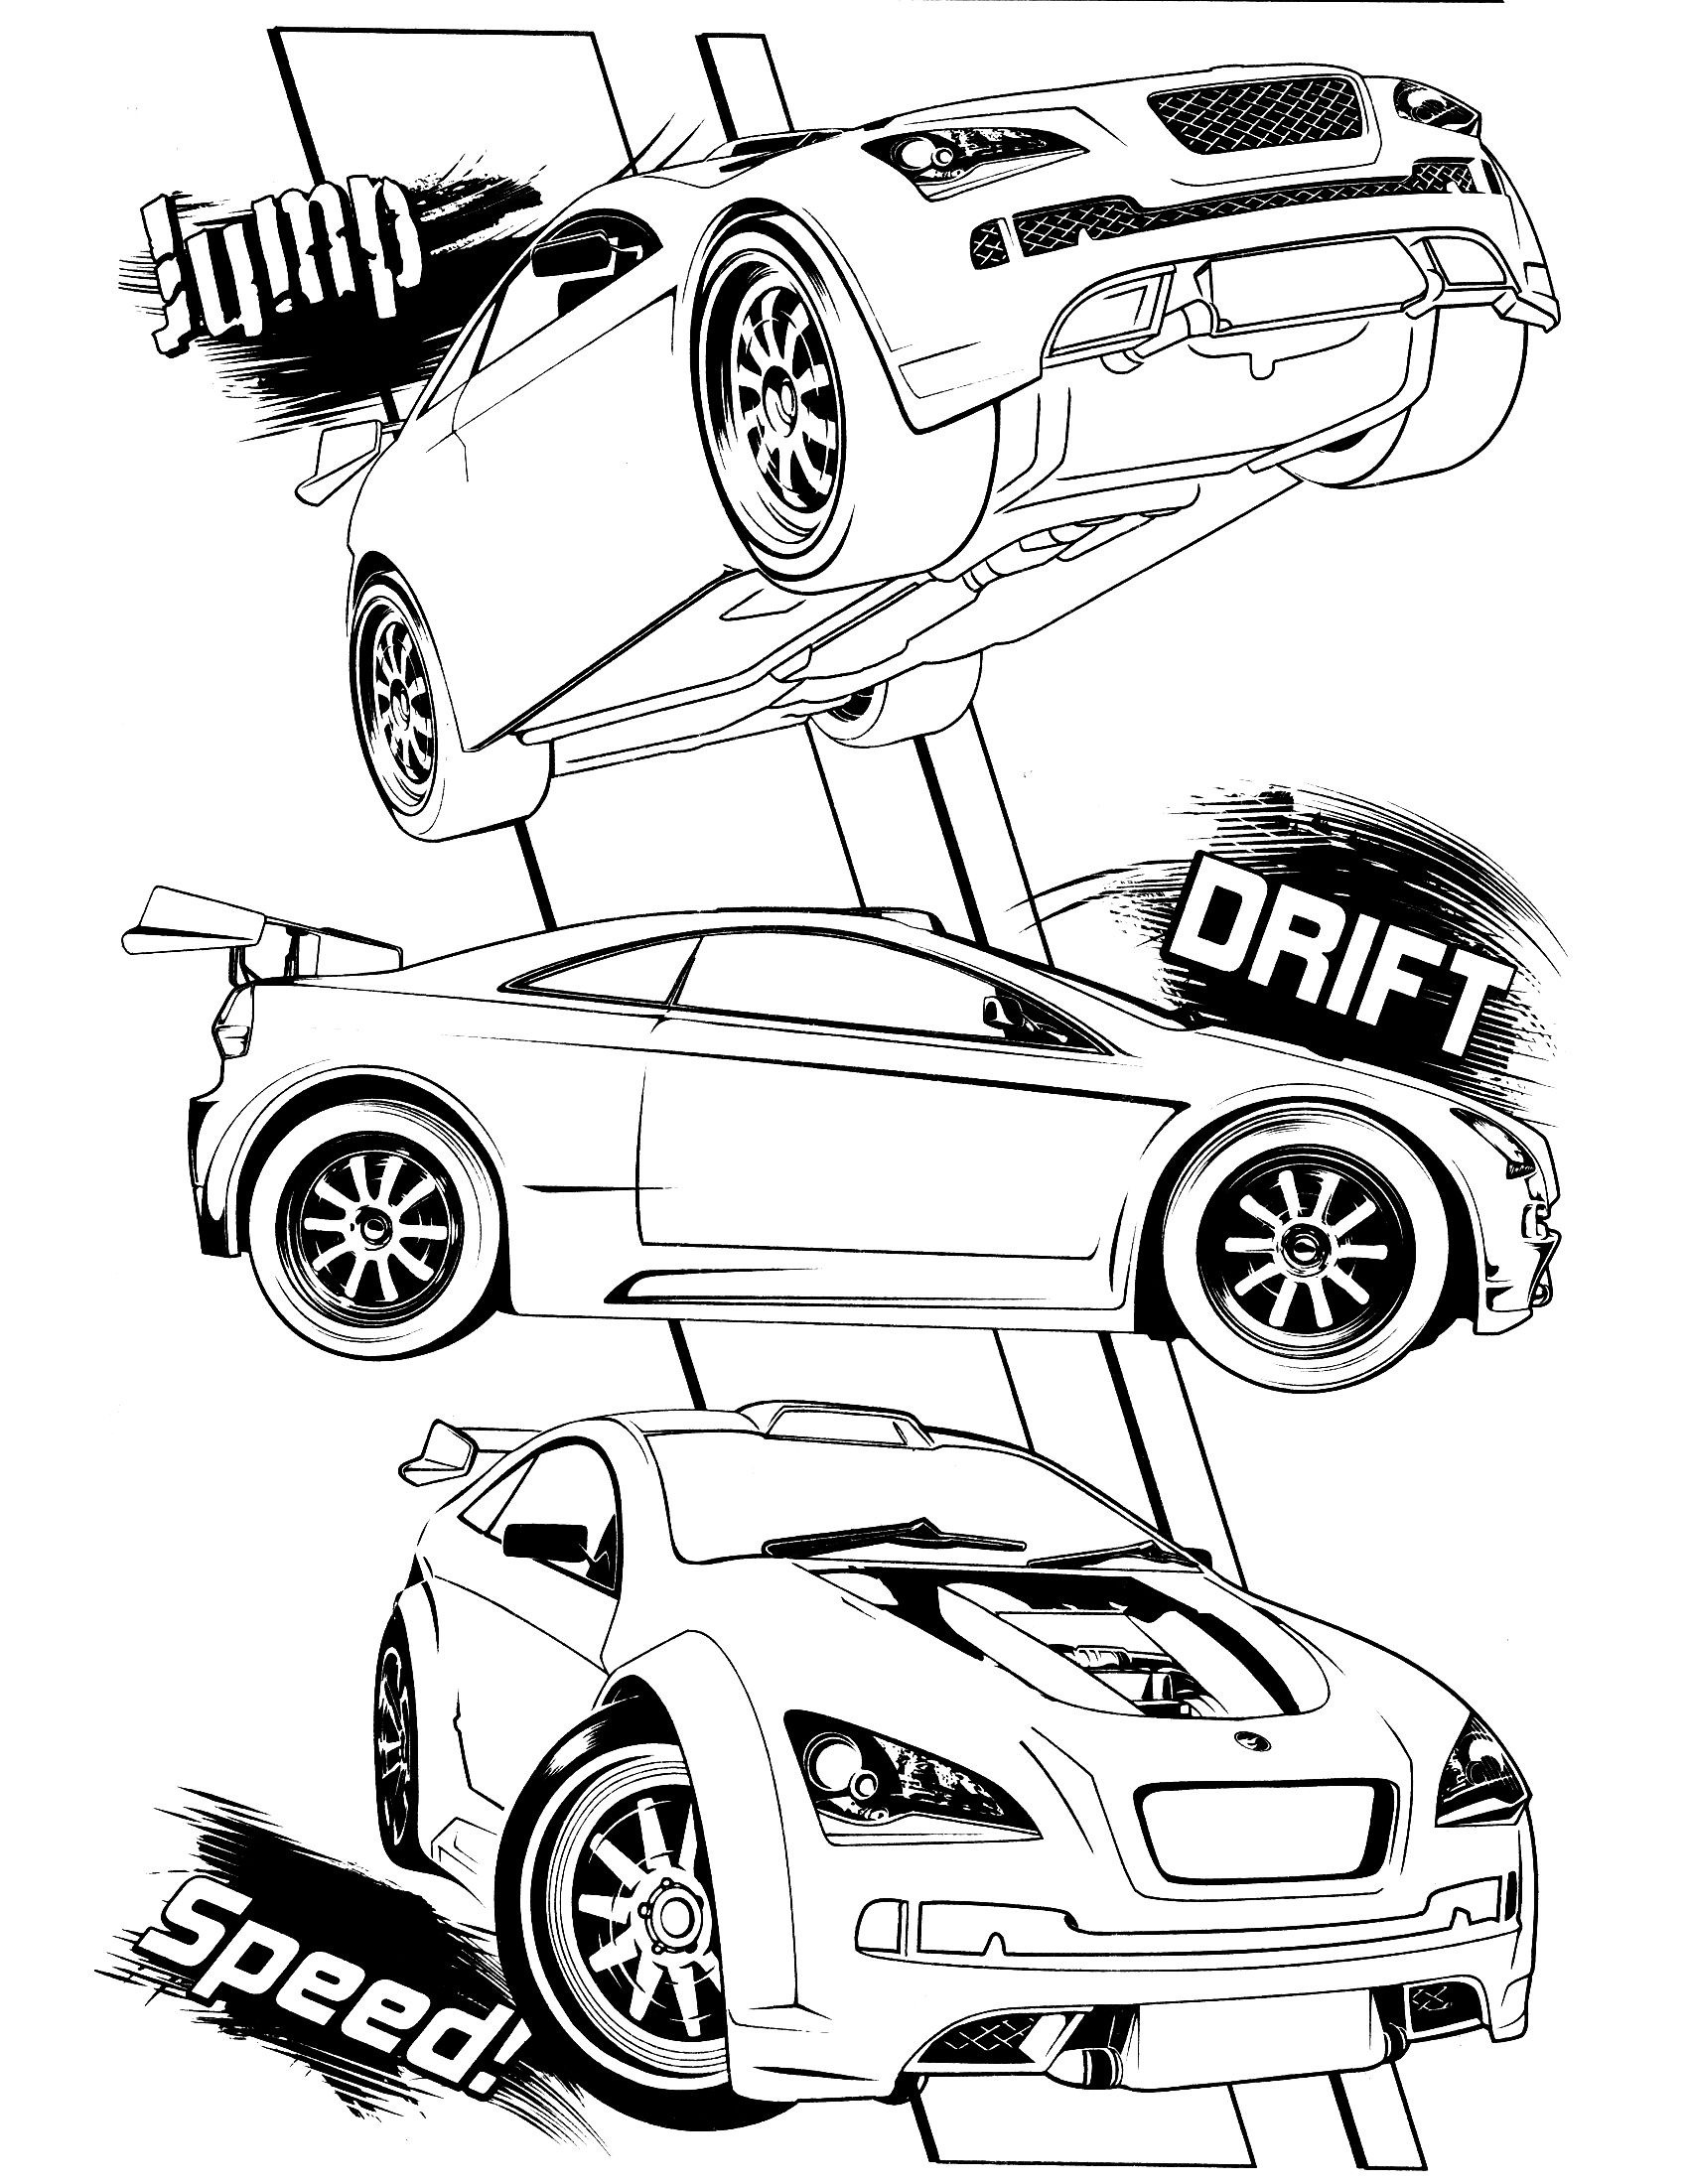 Coloring pages for hot wheels - Hot Wheels Coloring Page